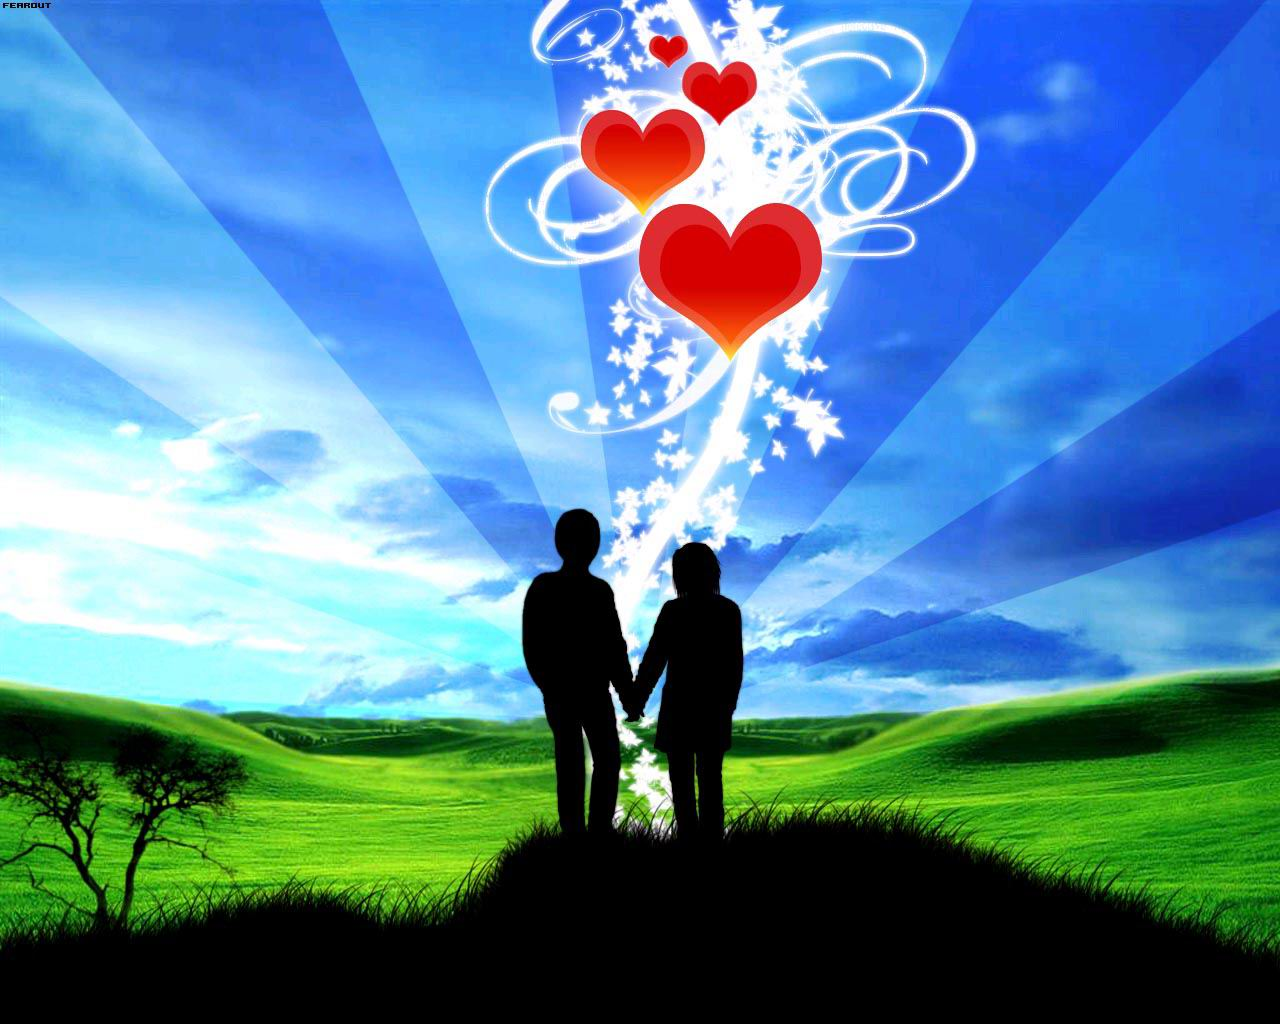 Love Wallpapers New : Love is Life: Love wallpapers new love wallpapers ...